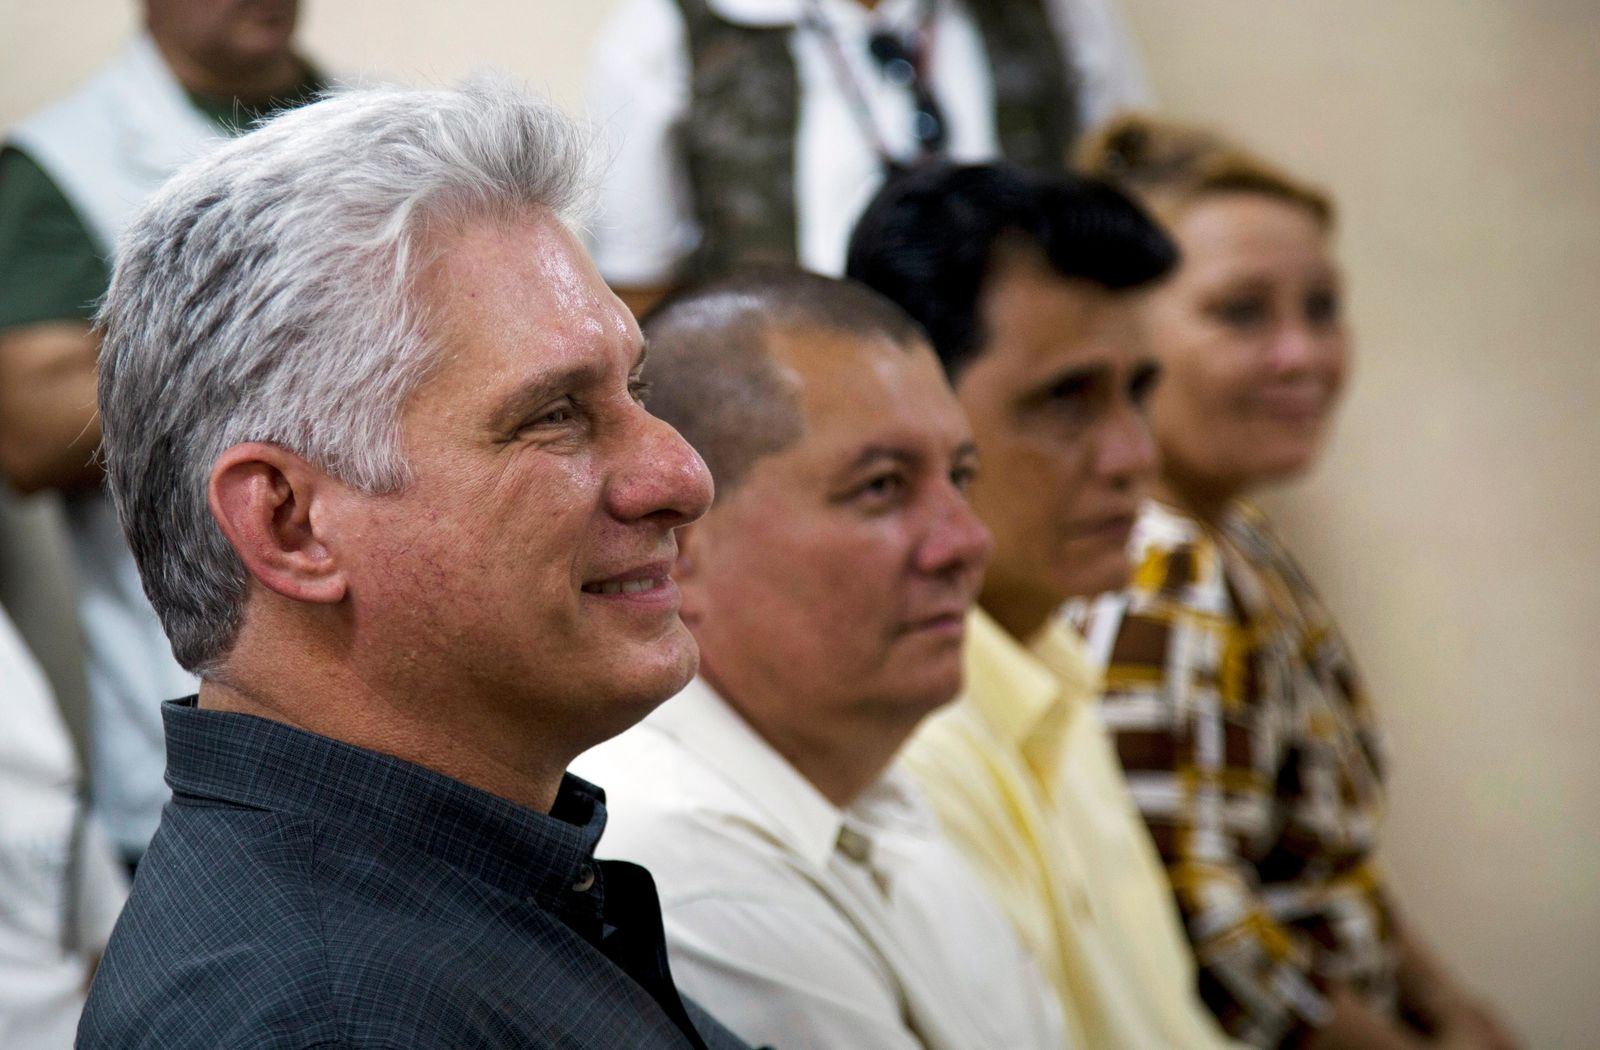 Cuba's President Miguel Diaz-Canel, left, attends a meeting in an art school during a tour in Las Tunas, Cuba, Thursday, Jan. 16, 2020. (AP Photo/Ismael Francisco)